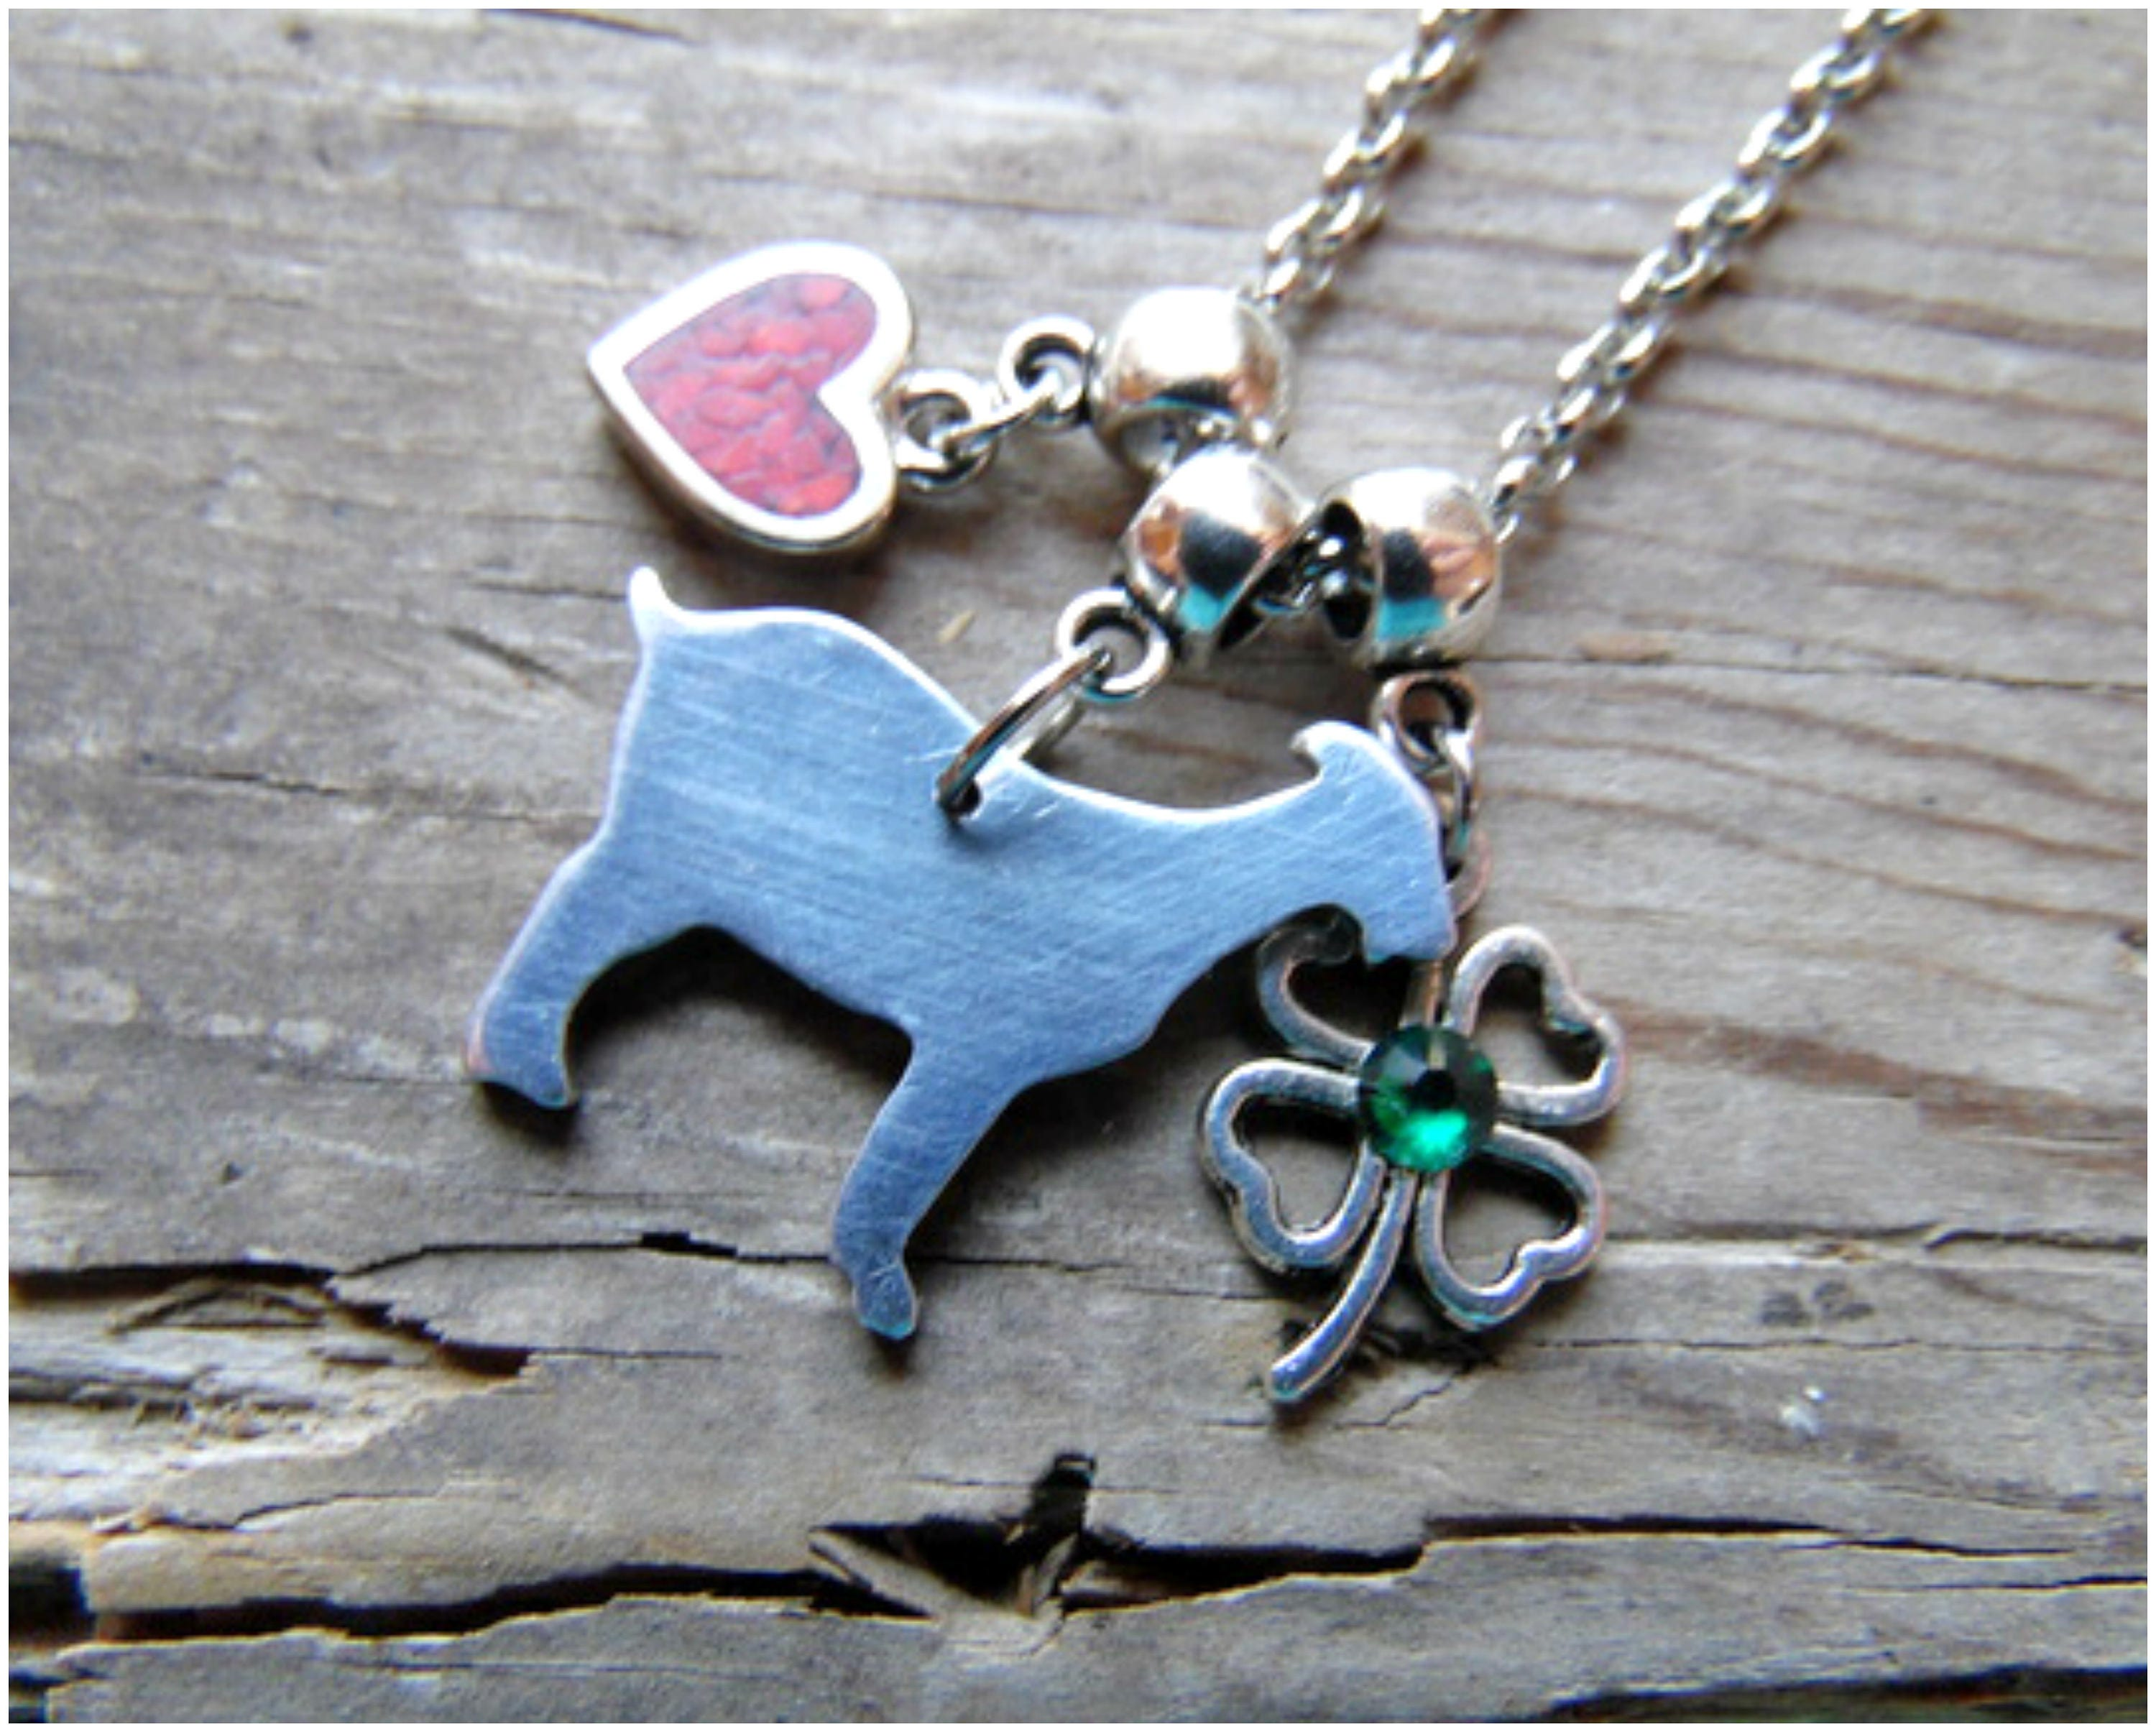 christy products necklace vegan robinson closet recycled goat designs by bunny compassionate mini pendant aluminum